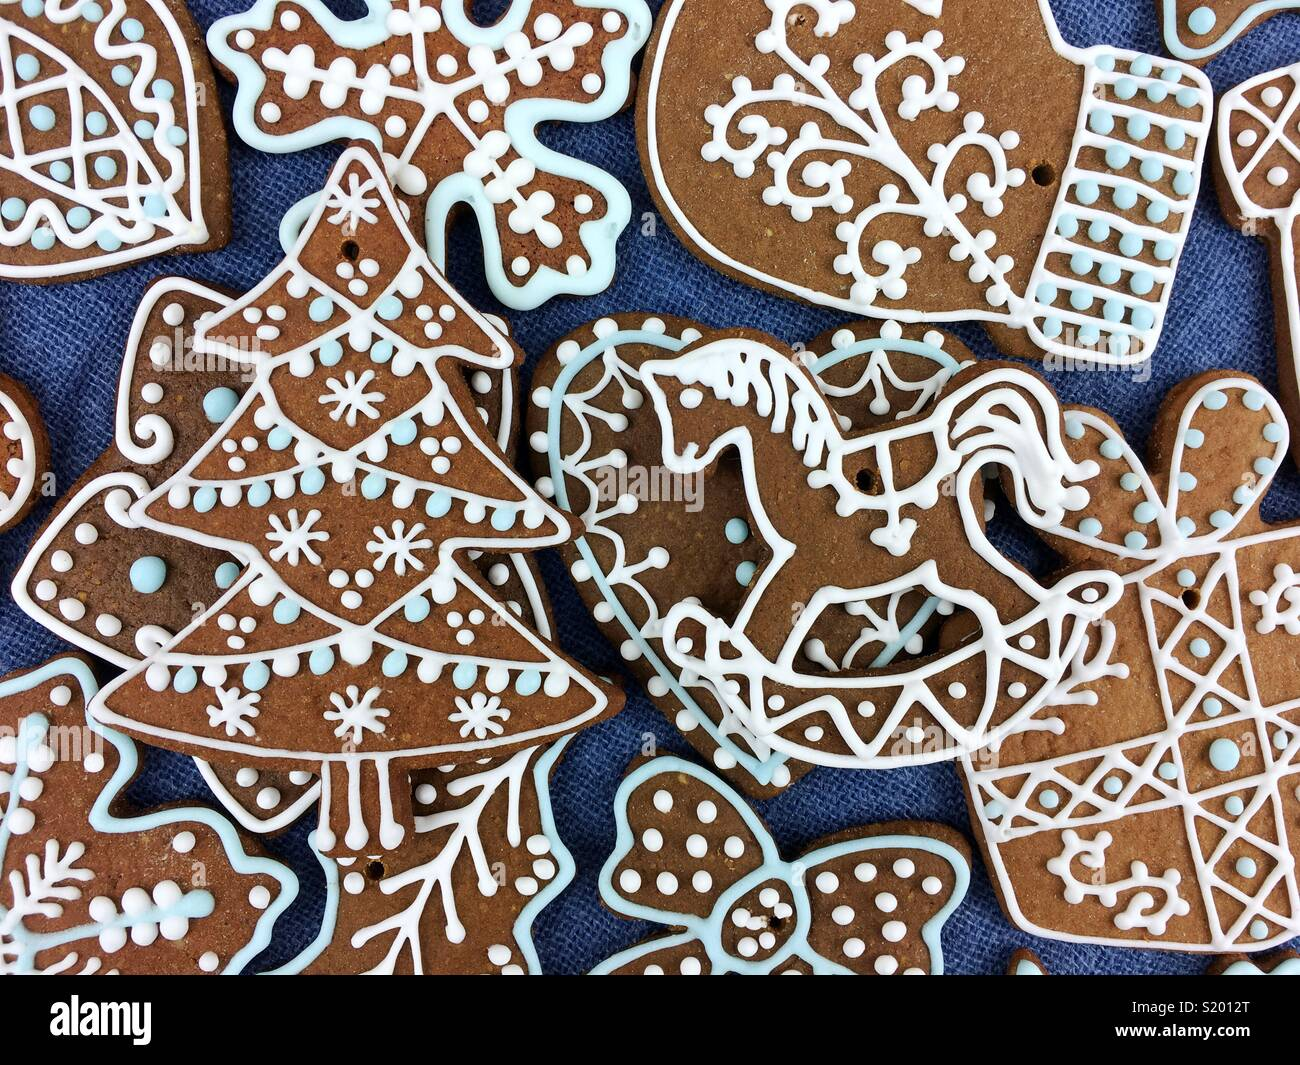 Christmas gingerbread cookie on a blue background - Stock Image